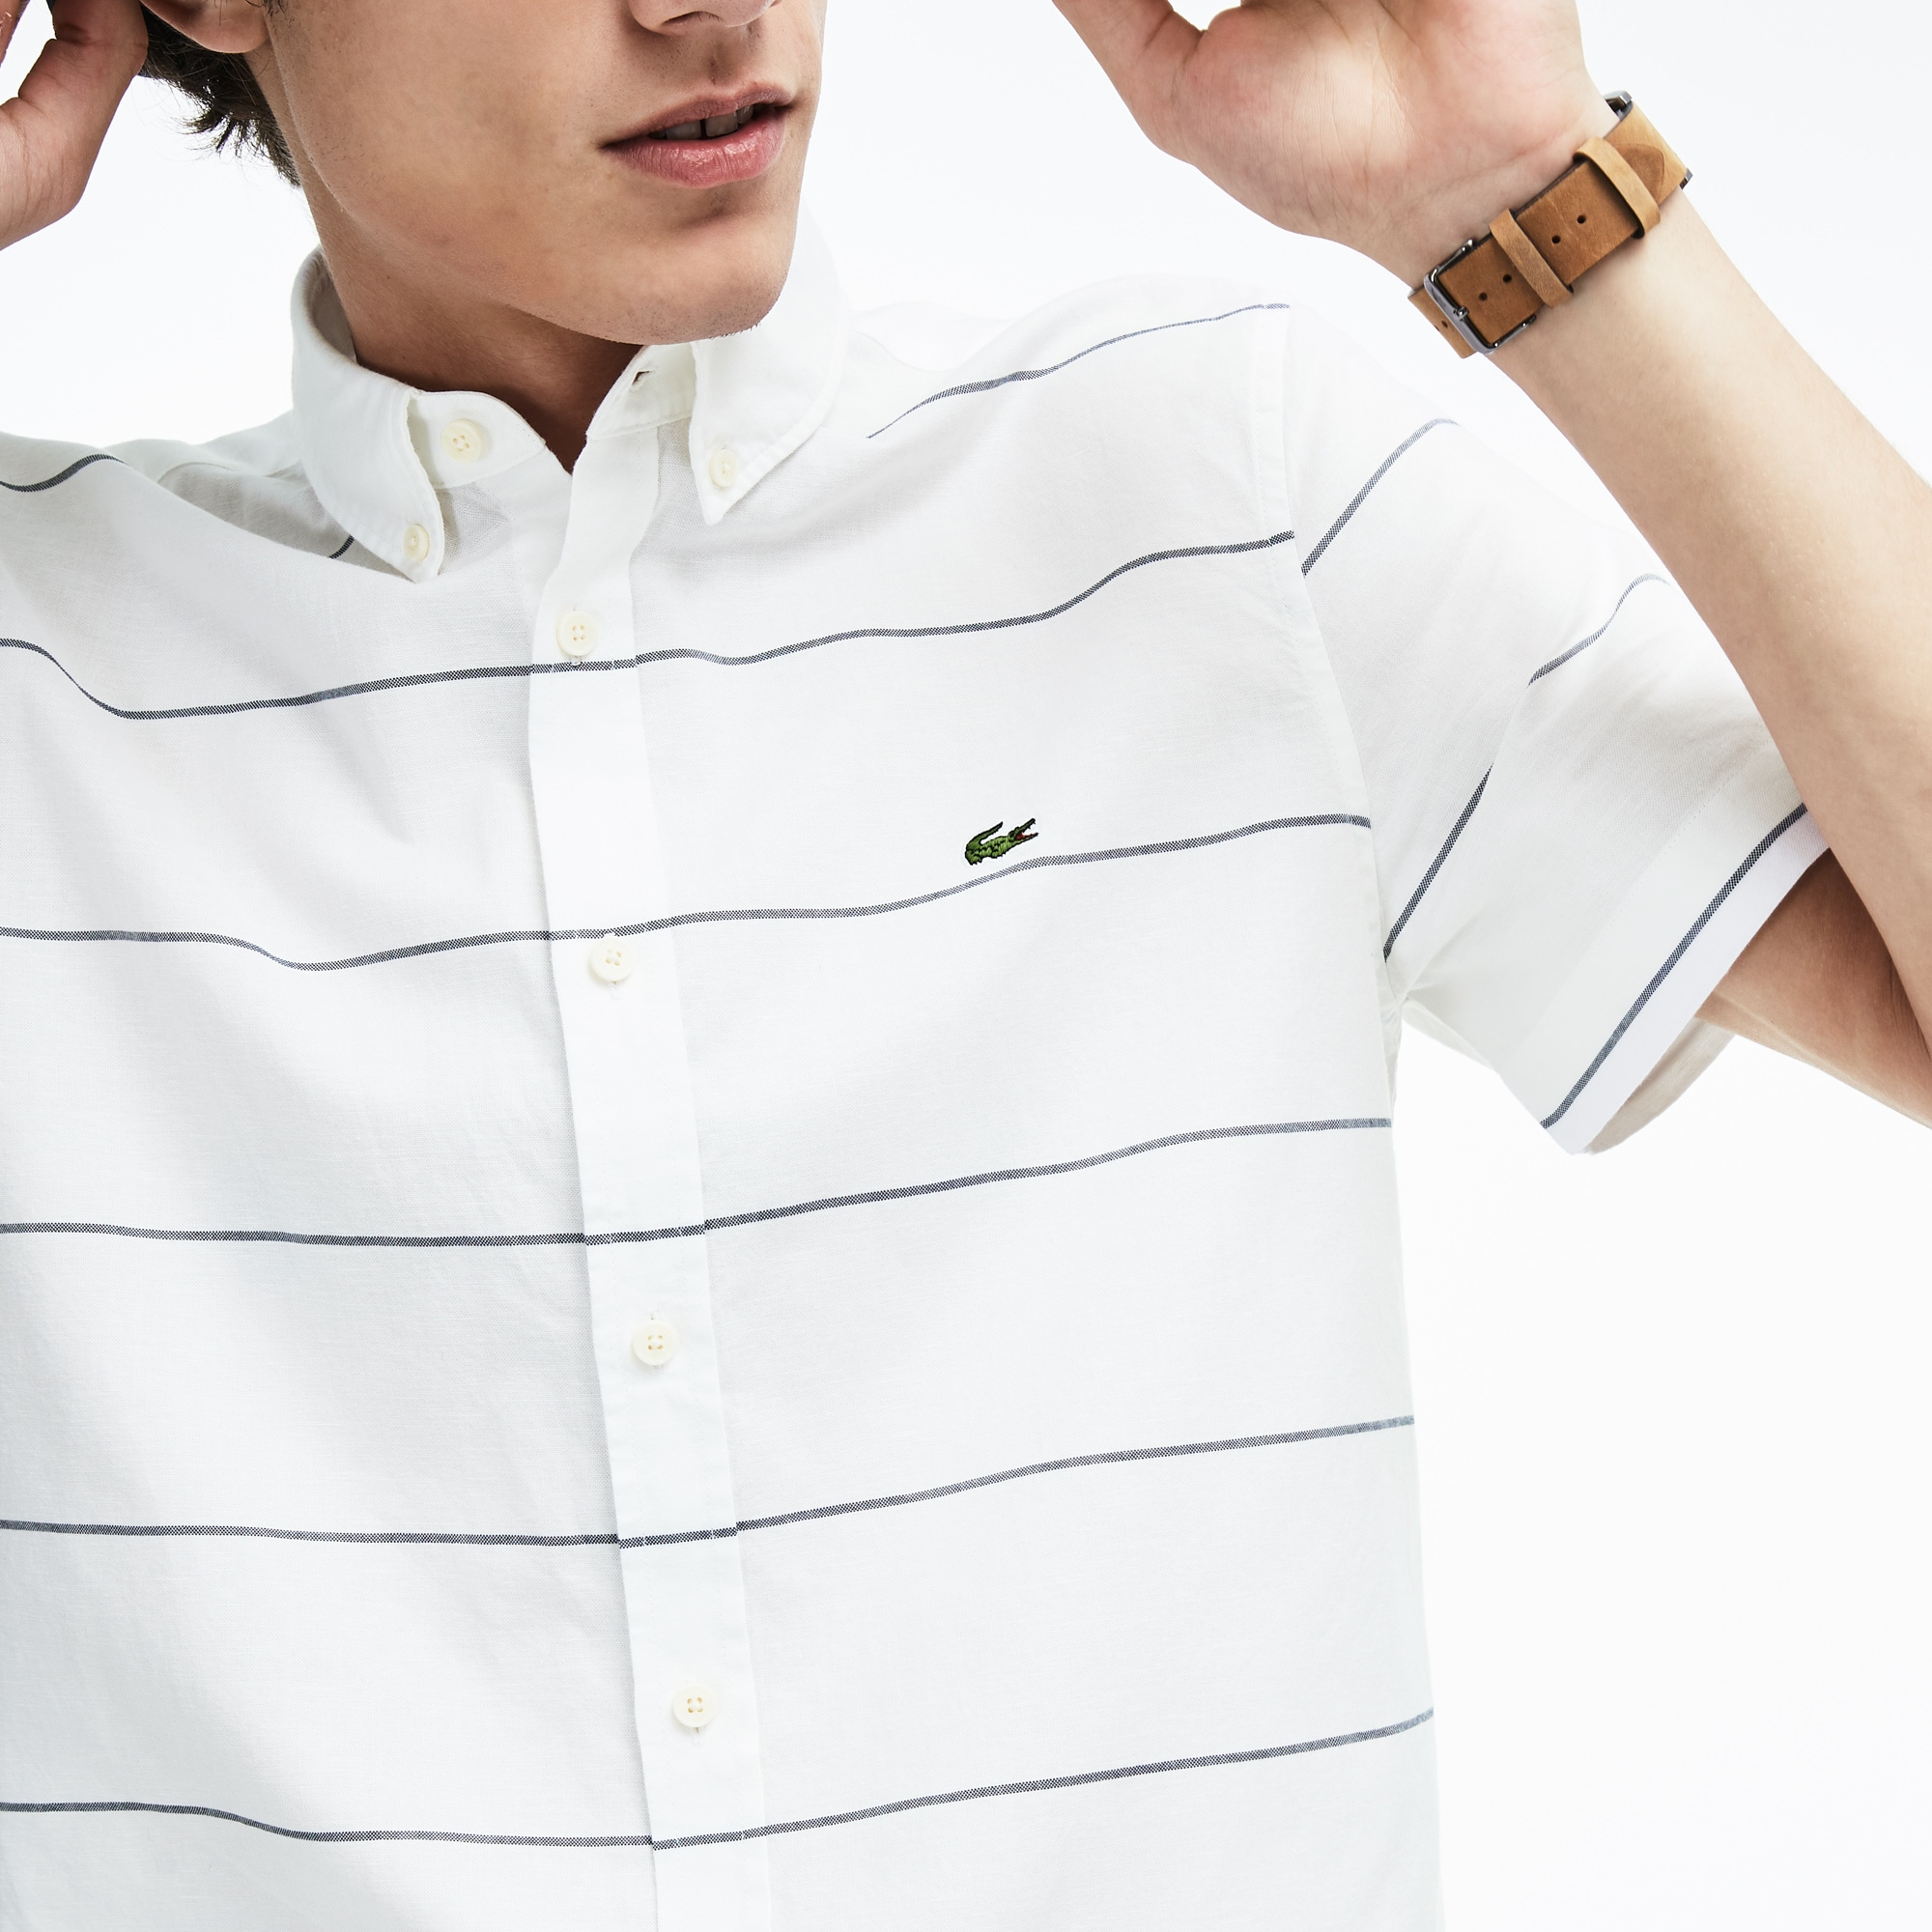 36819c85 Men's Slim Fit Striped Cotton And Linen Short Sleeves Shirt